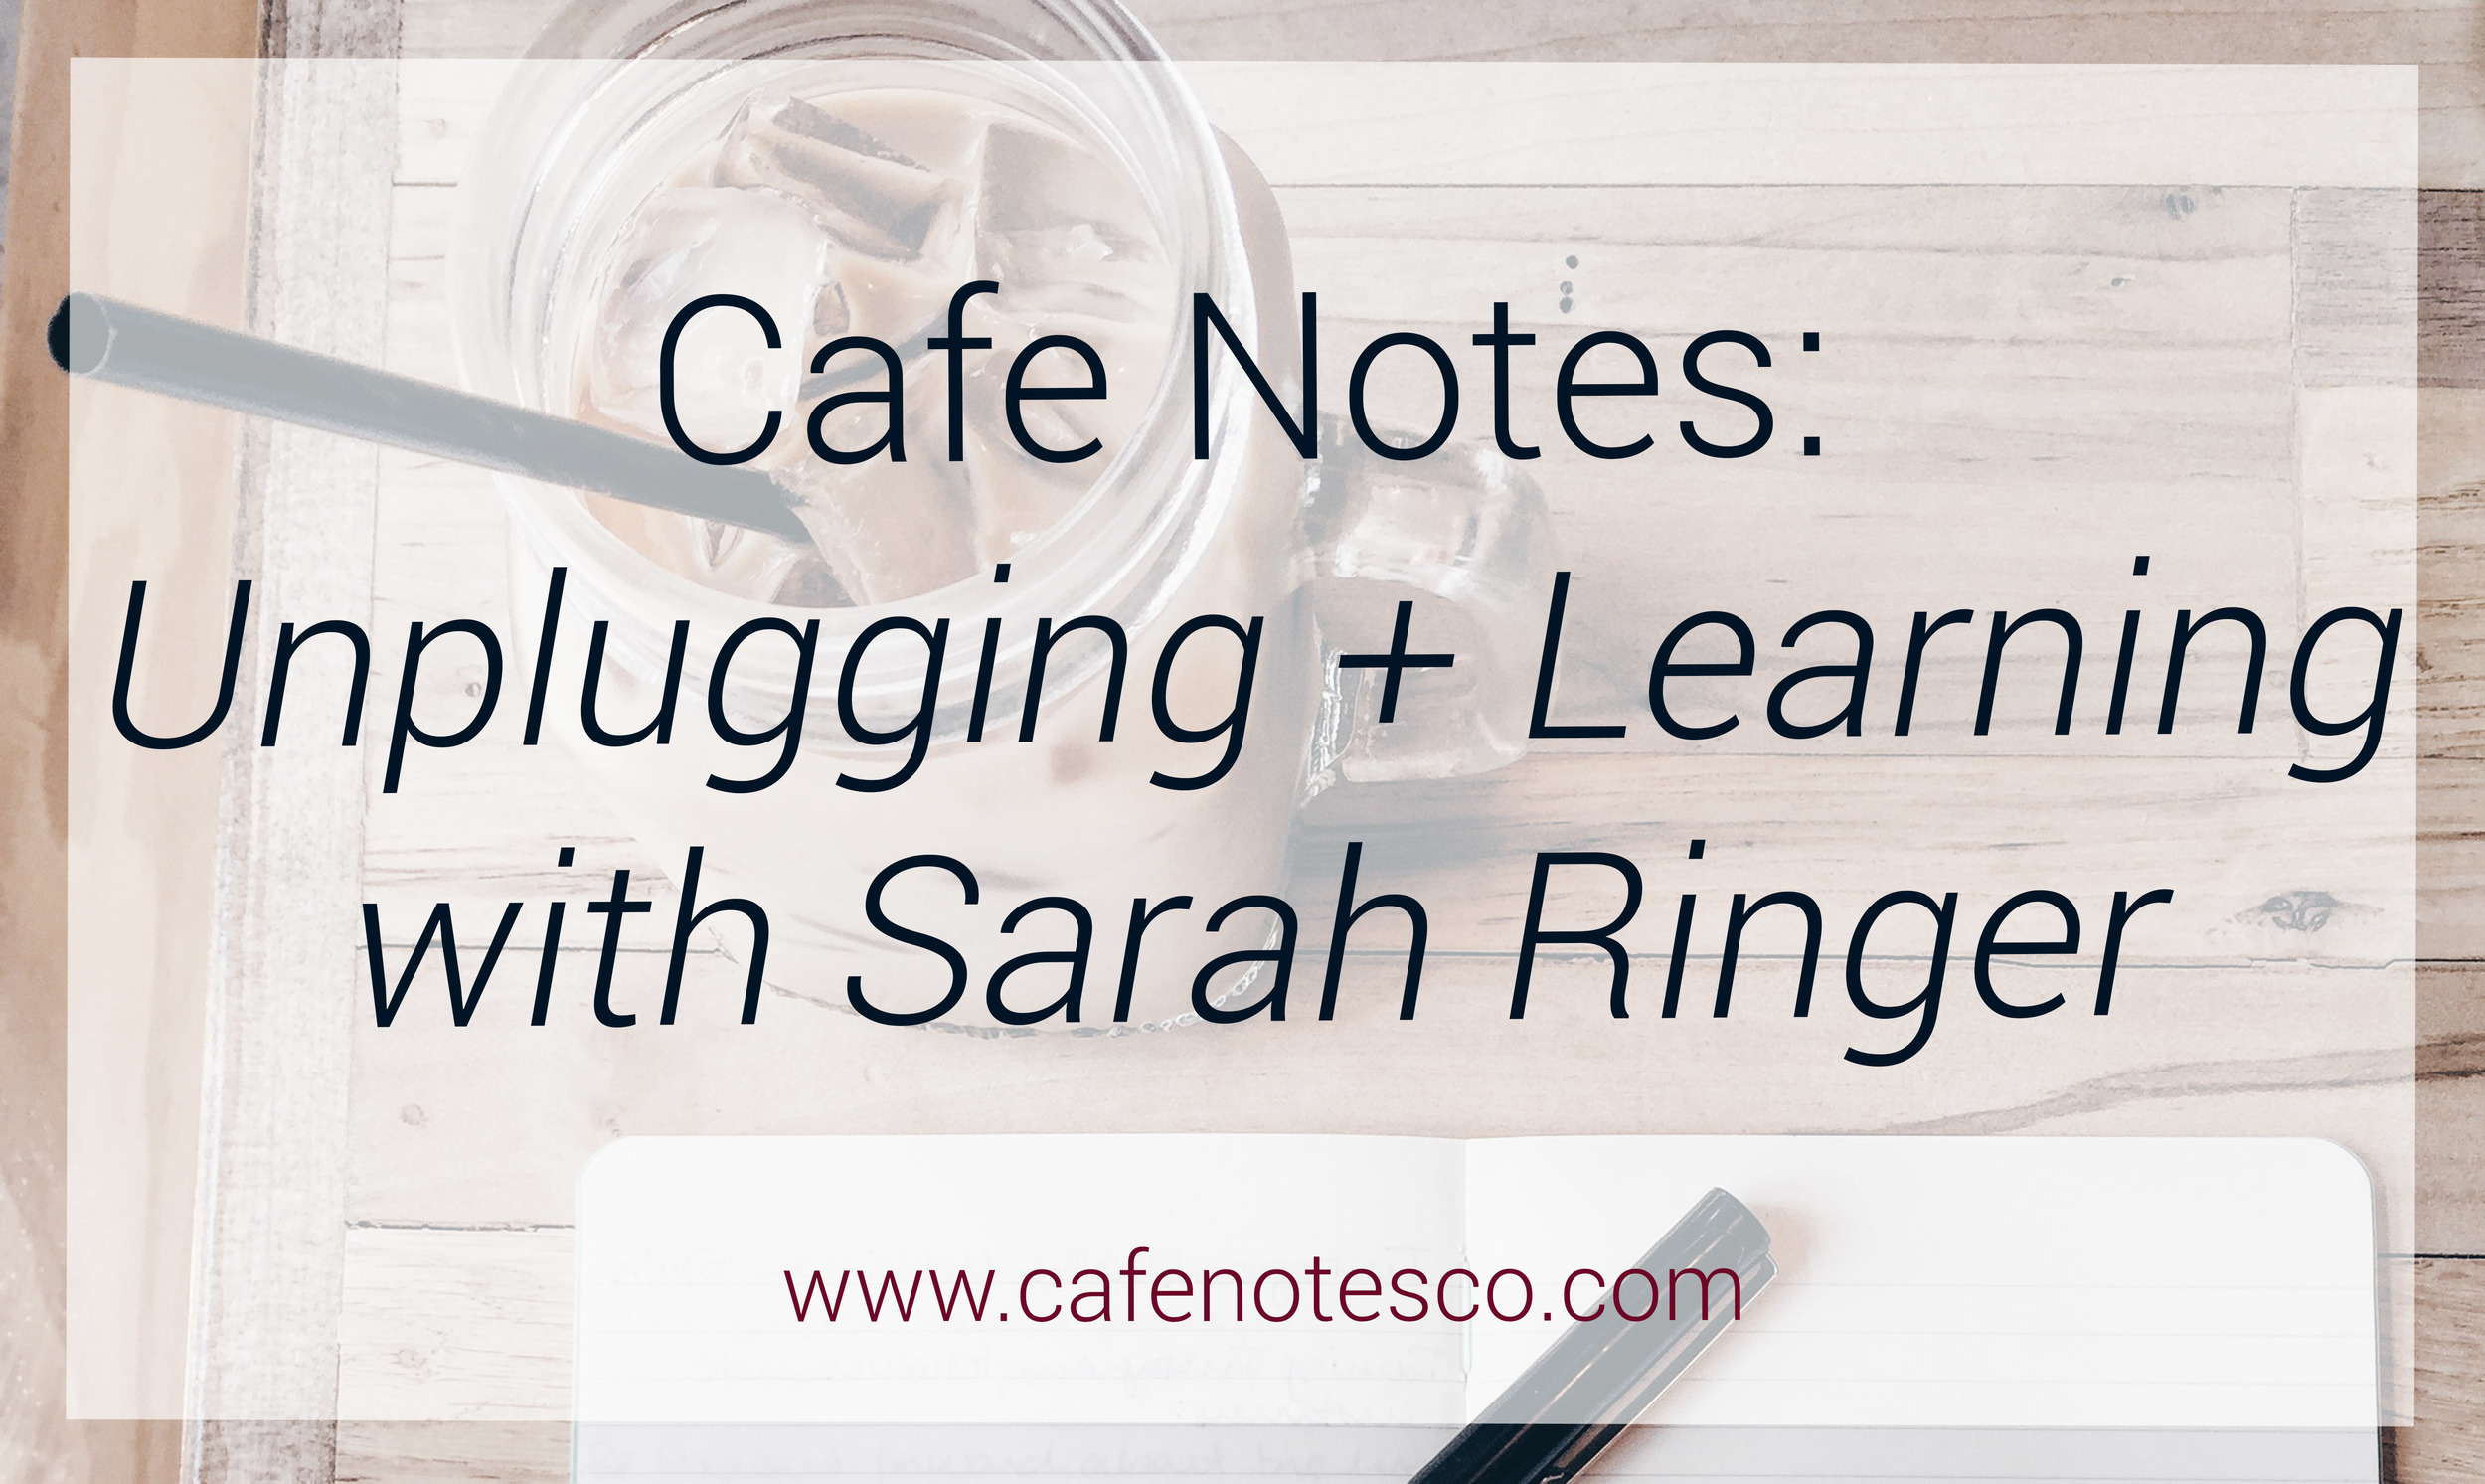 Cafe Notes + Company Blog Sarah Ringer